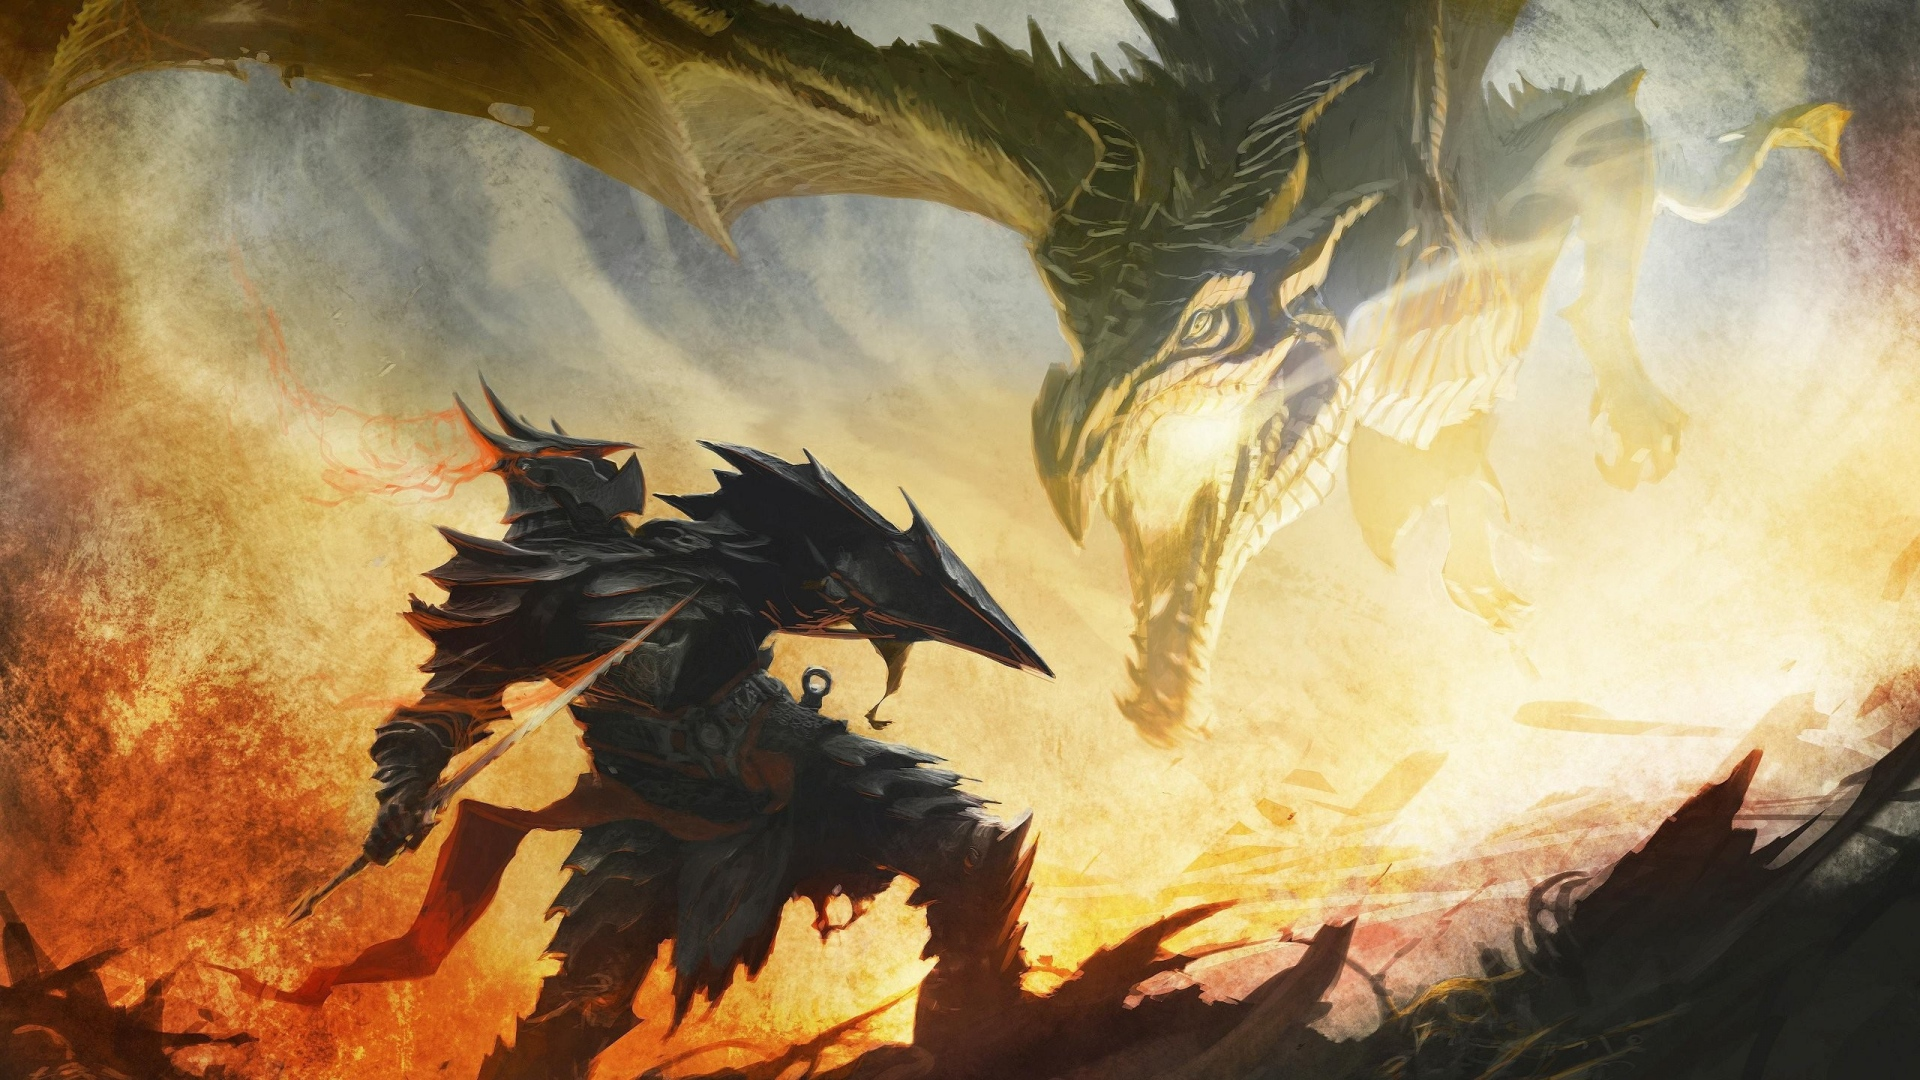 Cool Wallpaper Mountain Dragon - the_elder_scrolls_dragon_warrior_armor_fire_battle_21304_1920x1080  HD_727755.jpg